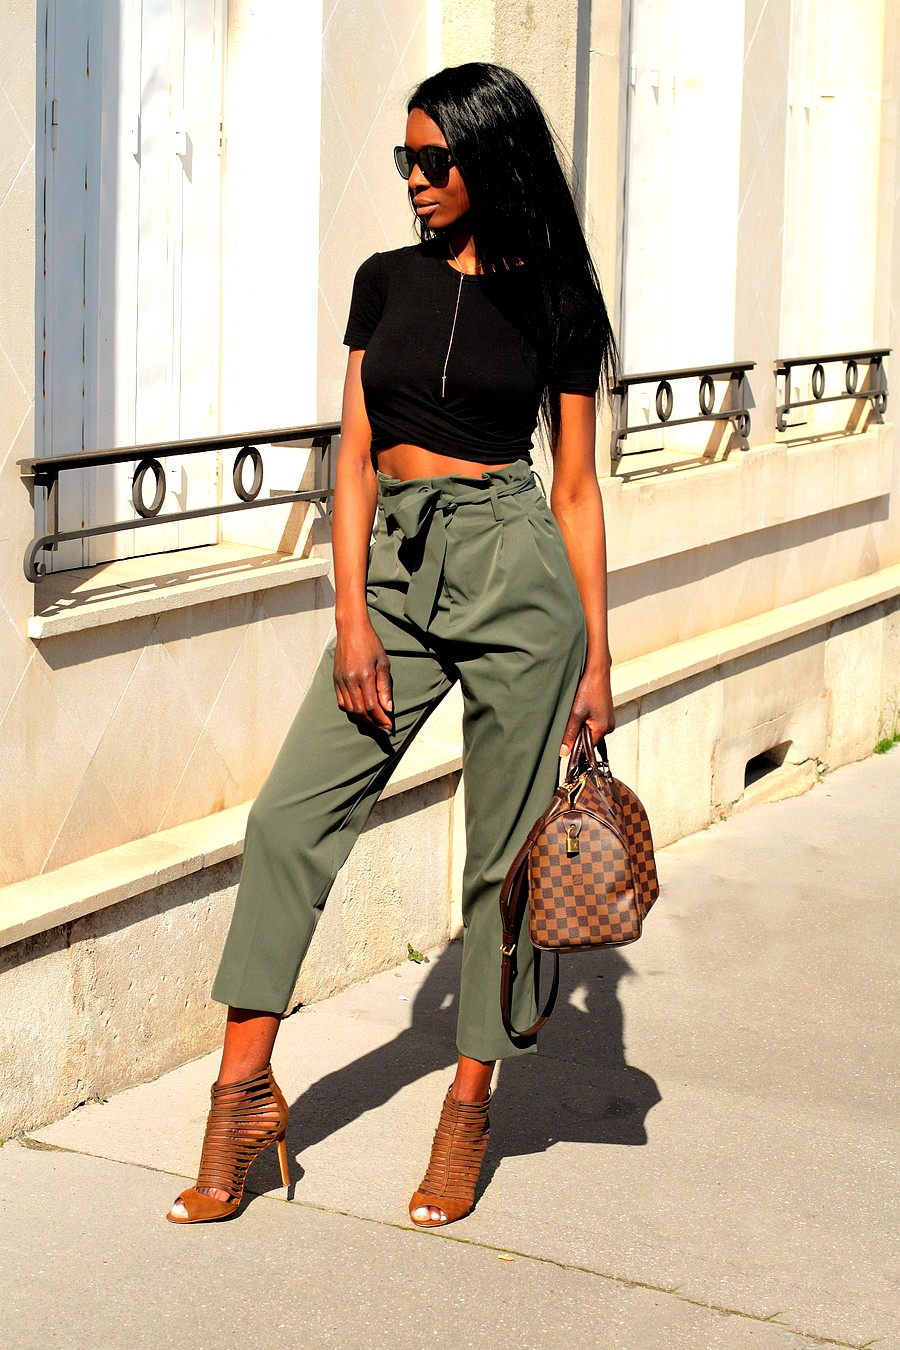 pantalon-kaki-tendance-blog-mode-crop-top-zara-sac-speedy-louis-vuitton